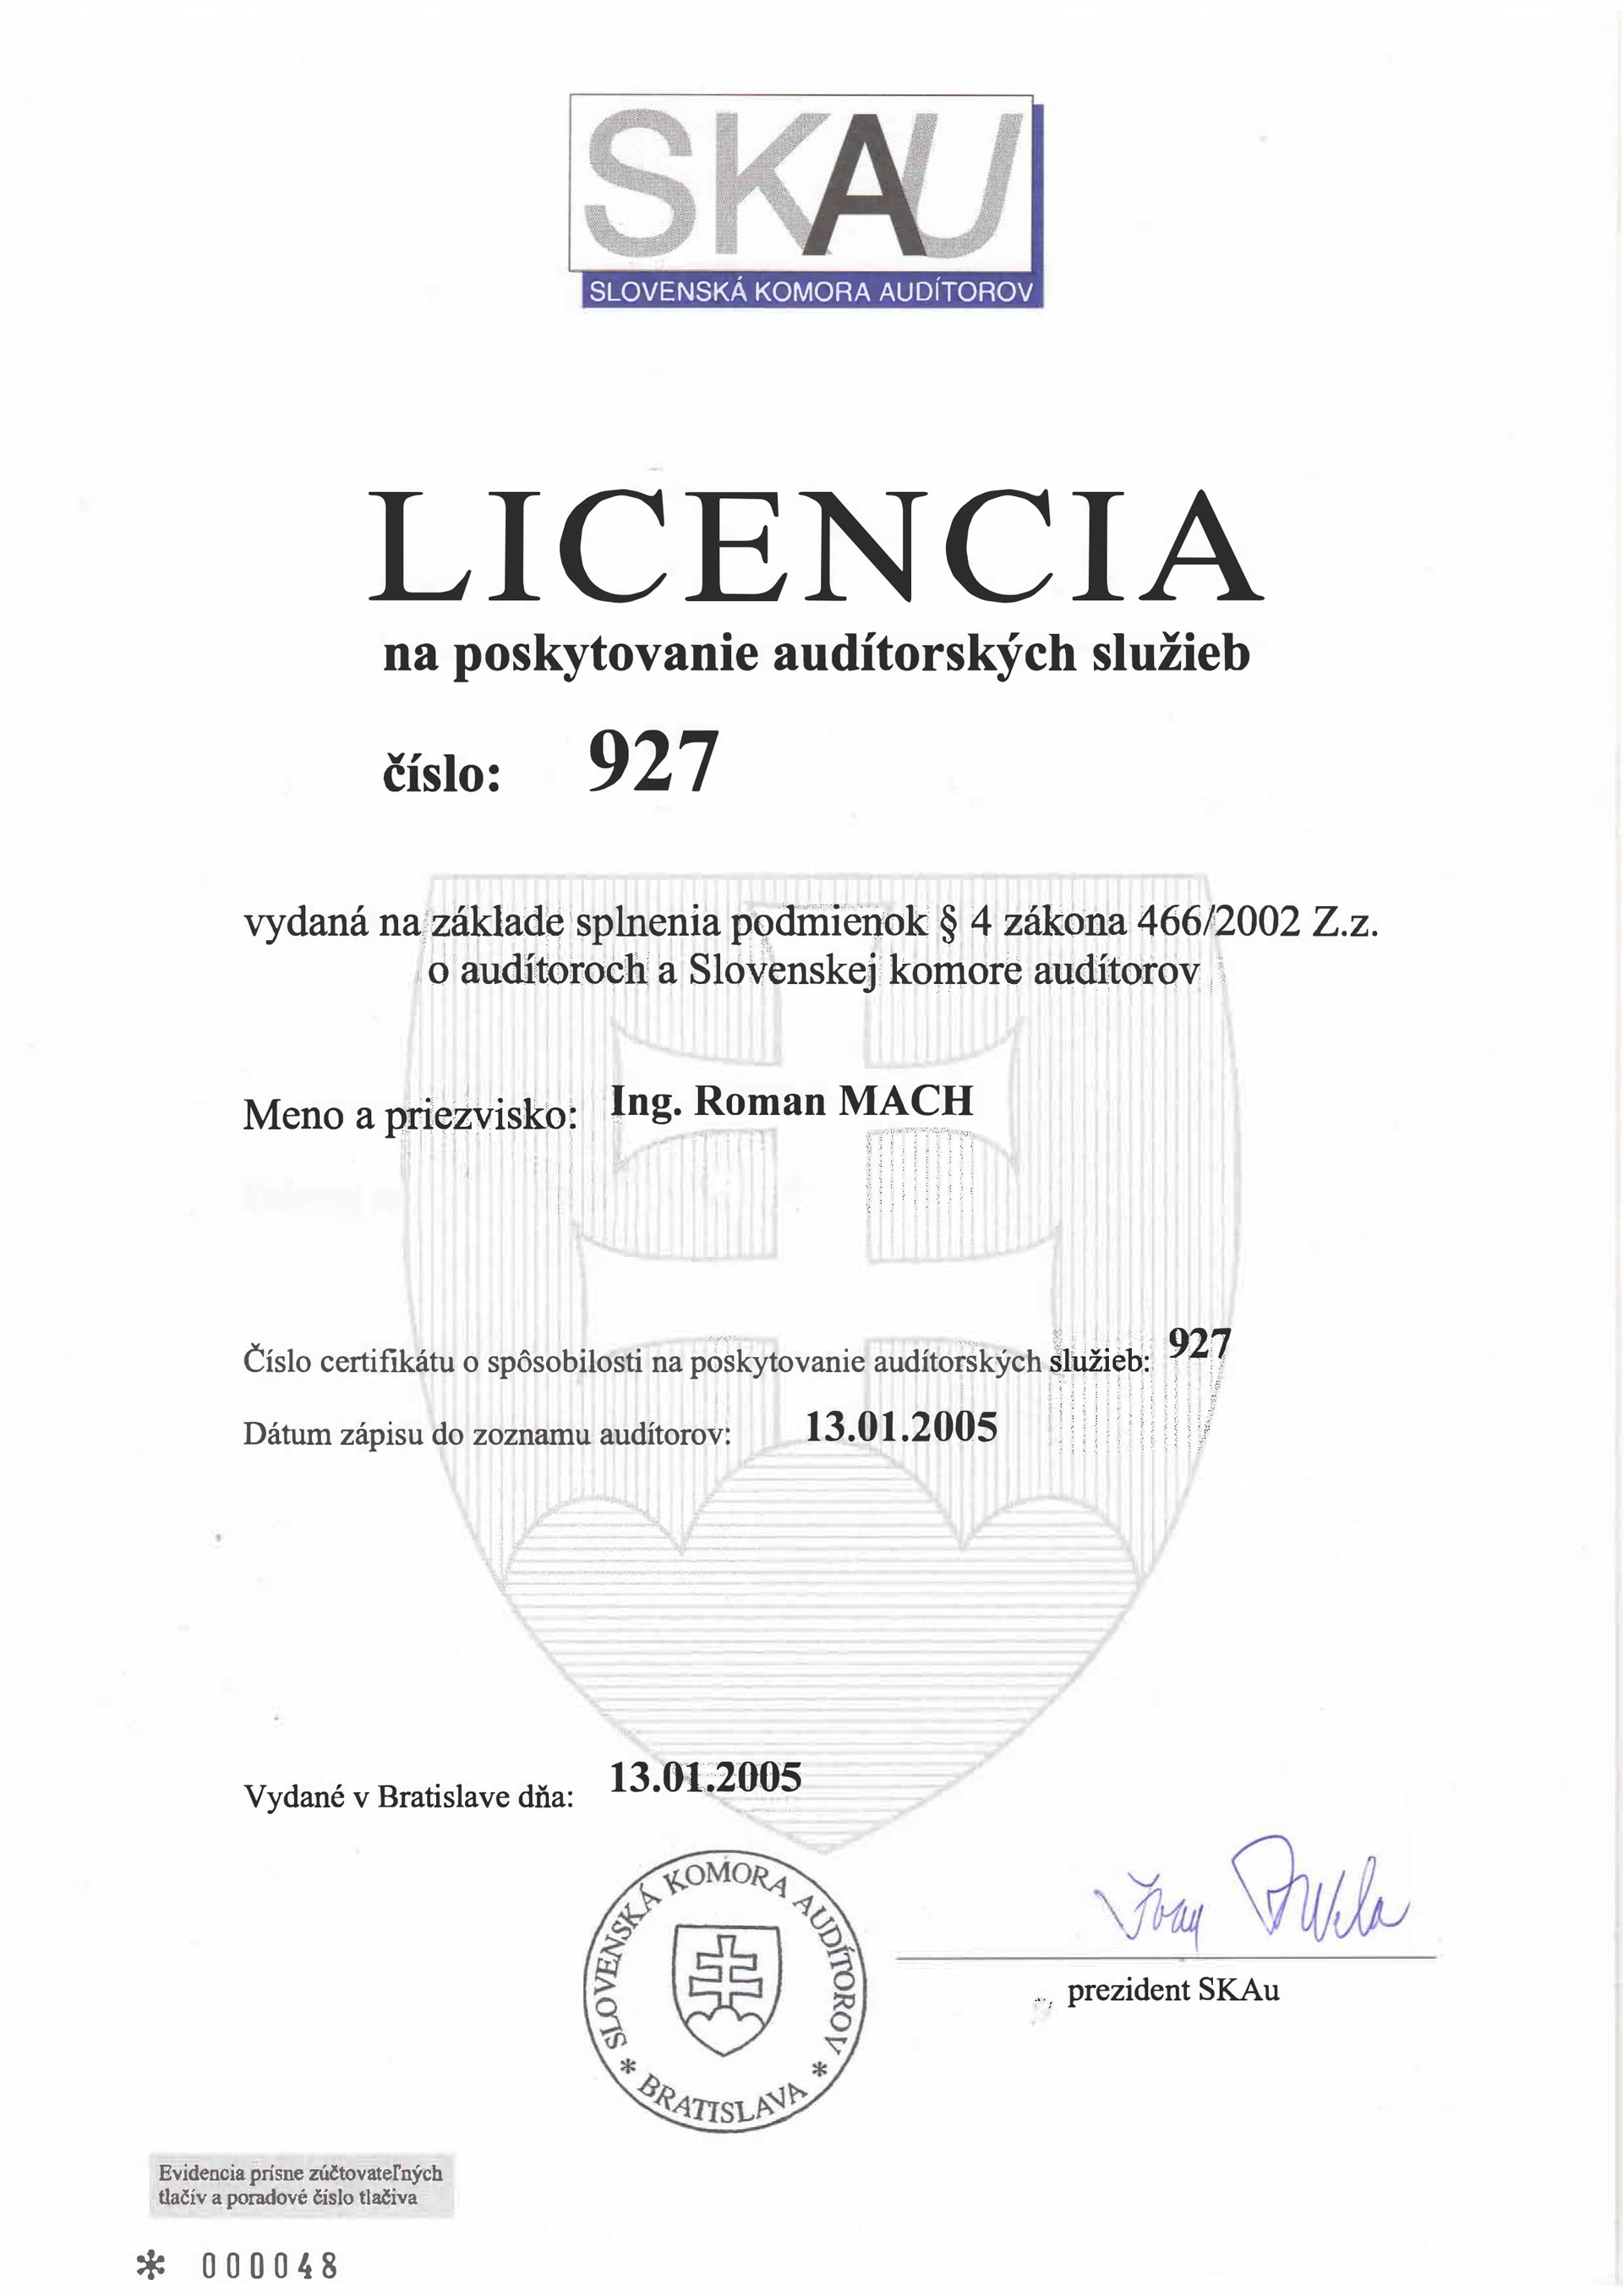 BRM-RMA-Licencia-SKAU-v2-featured